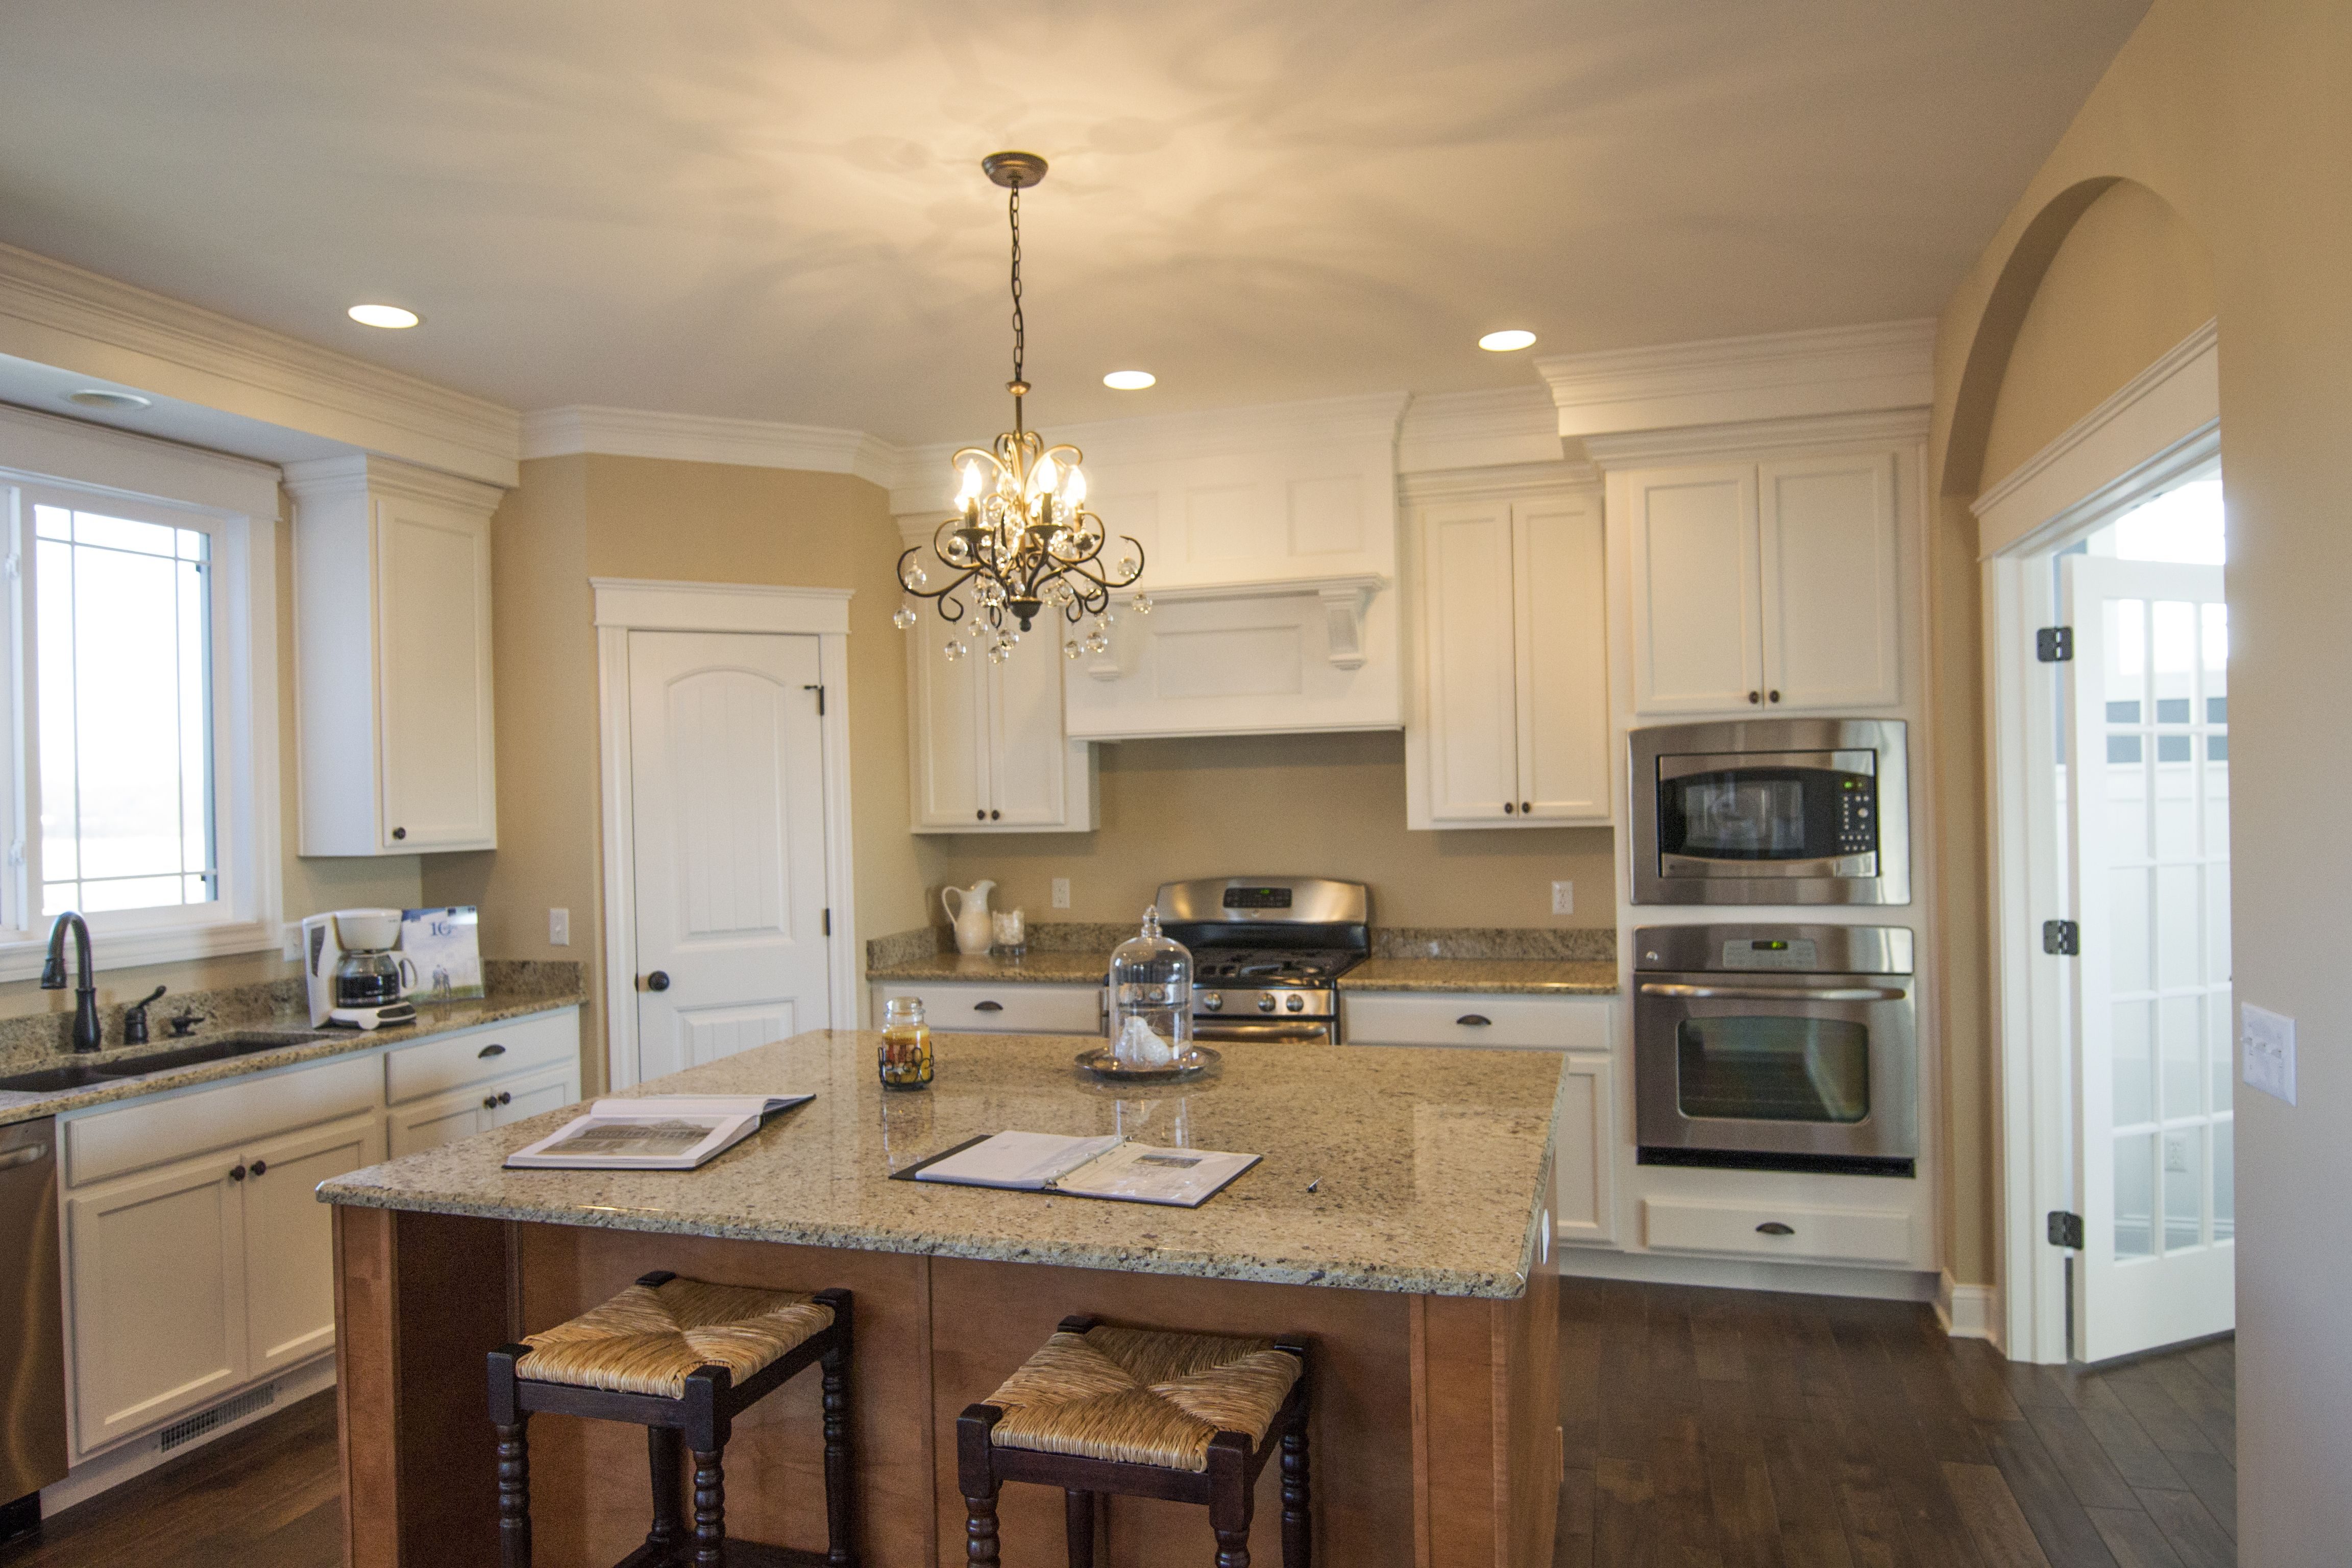 Our Kitchen In The Alexandria The Model Home Come On In Any Time New Home Builders Home Home Builders